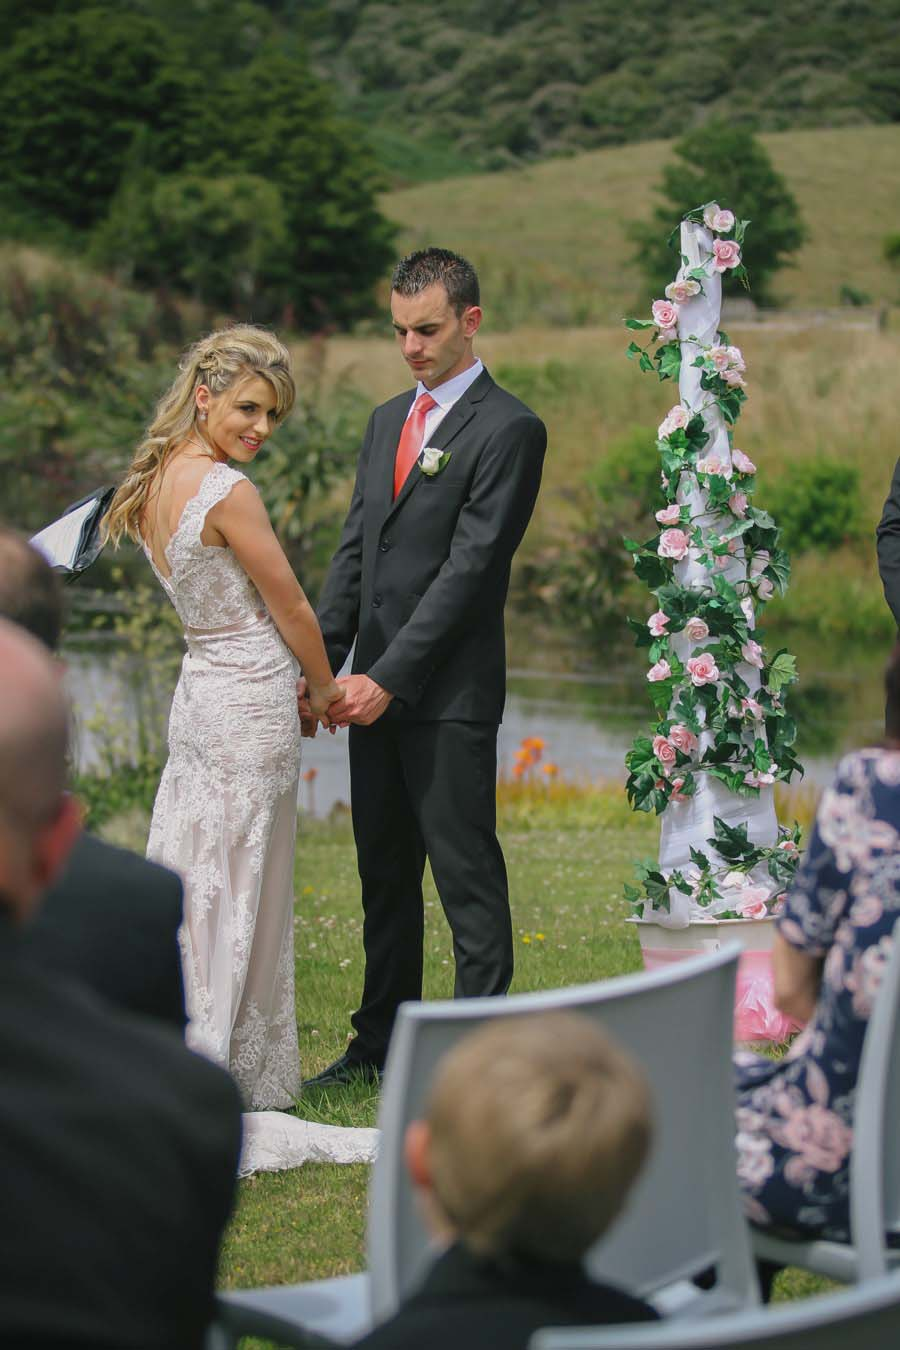 silverdale_wedding_nz_photographer-64